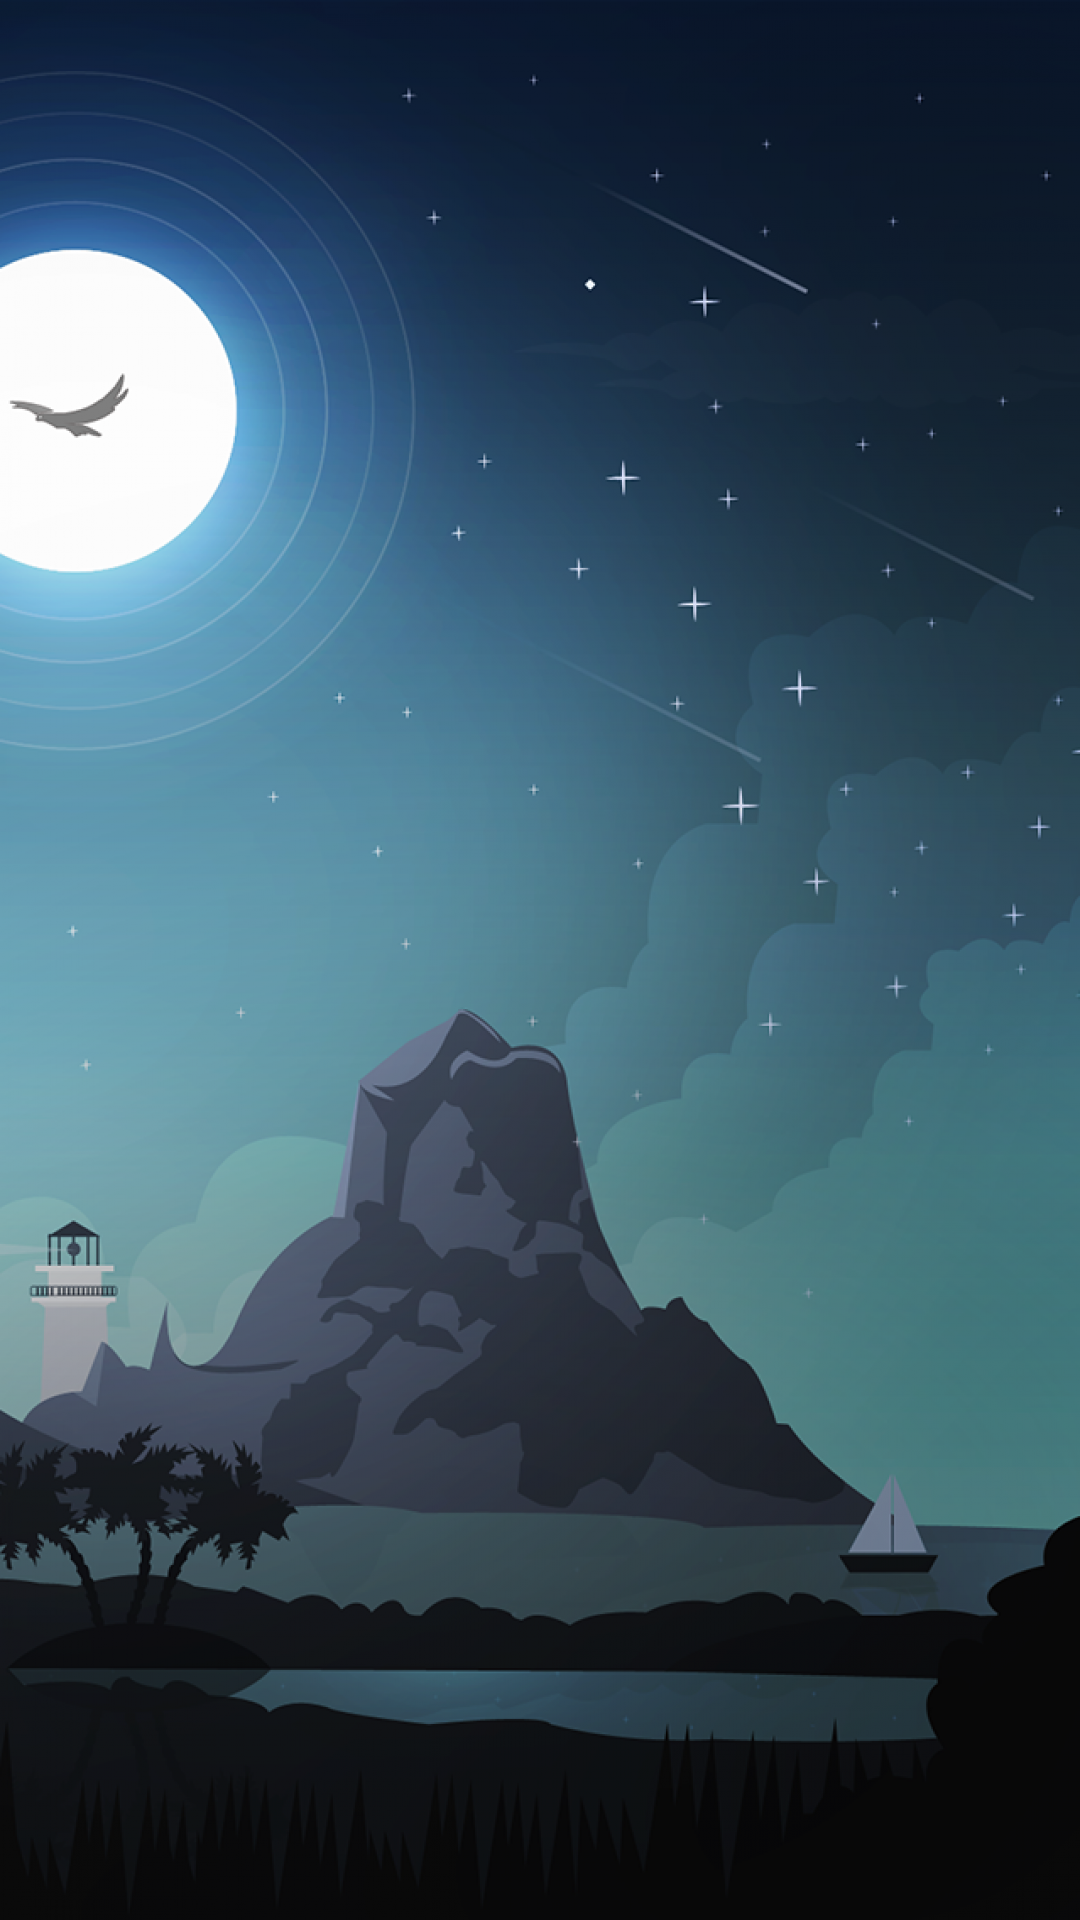 iPhone Wallpaper illustratuion night mountain Illustration